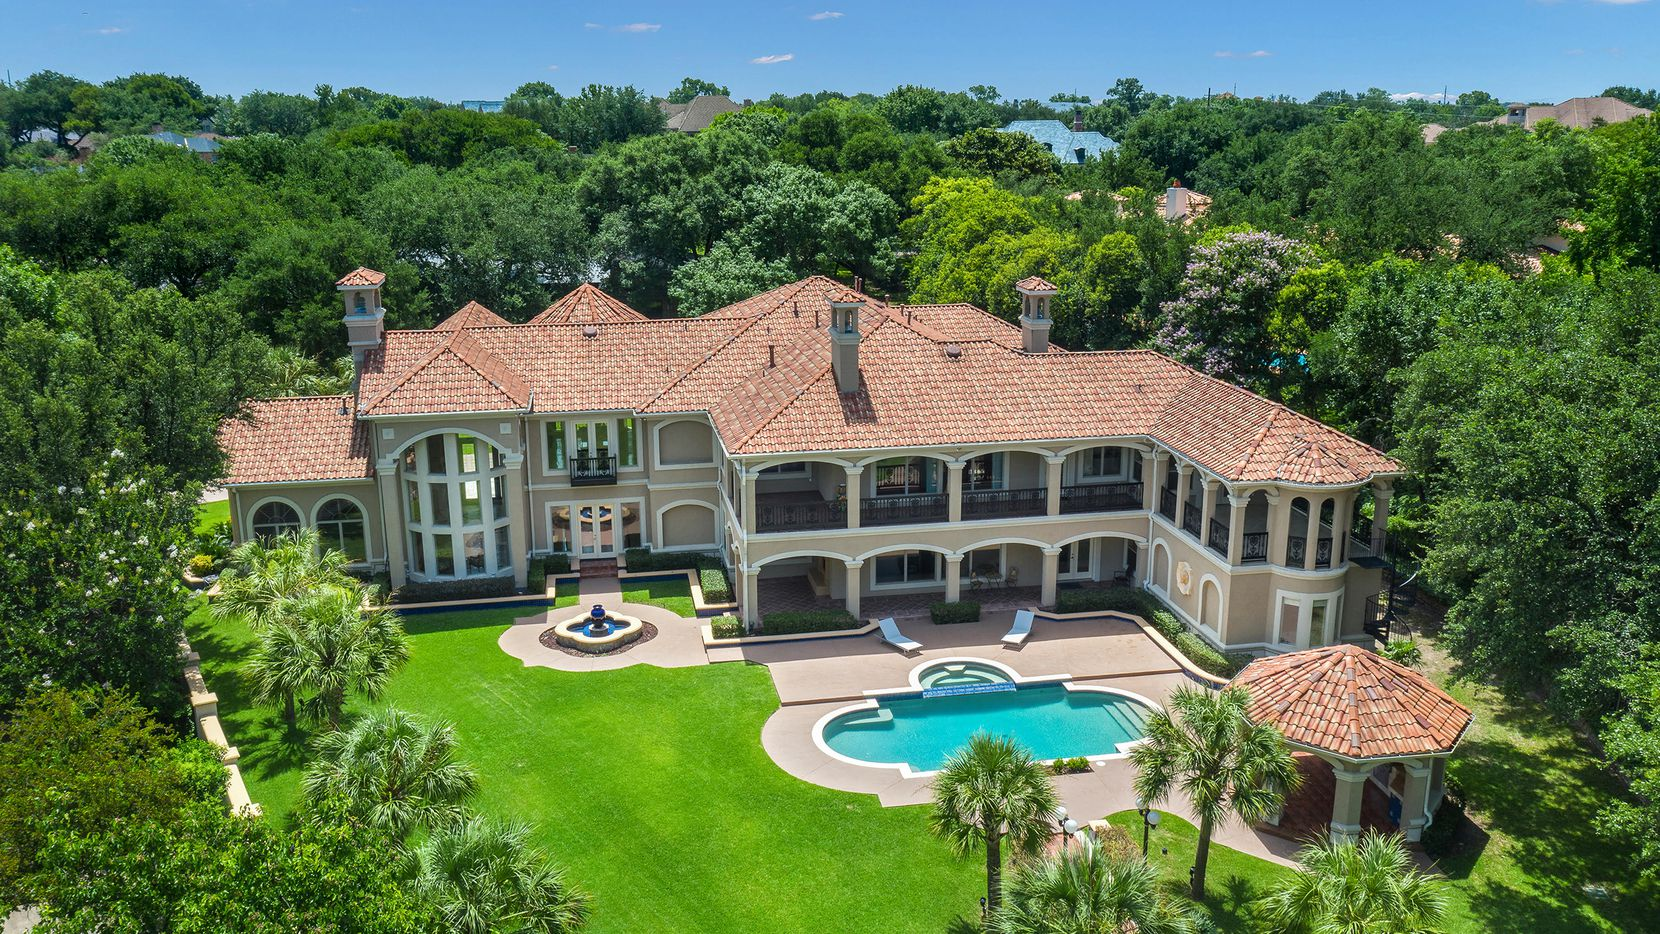 The Mediterranean estate at 5920 Gladeside Court overlooks Preston Trails Golf Course and is listed at $2,895,000.